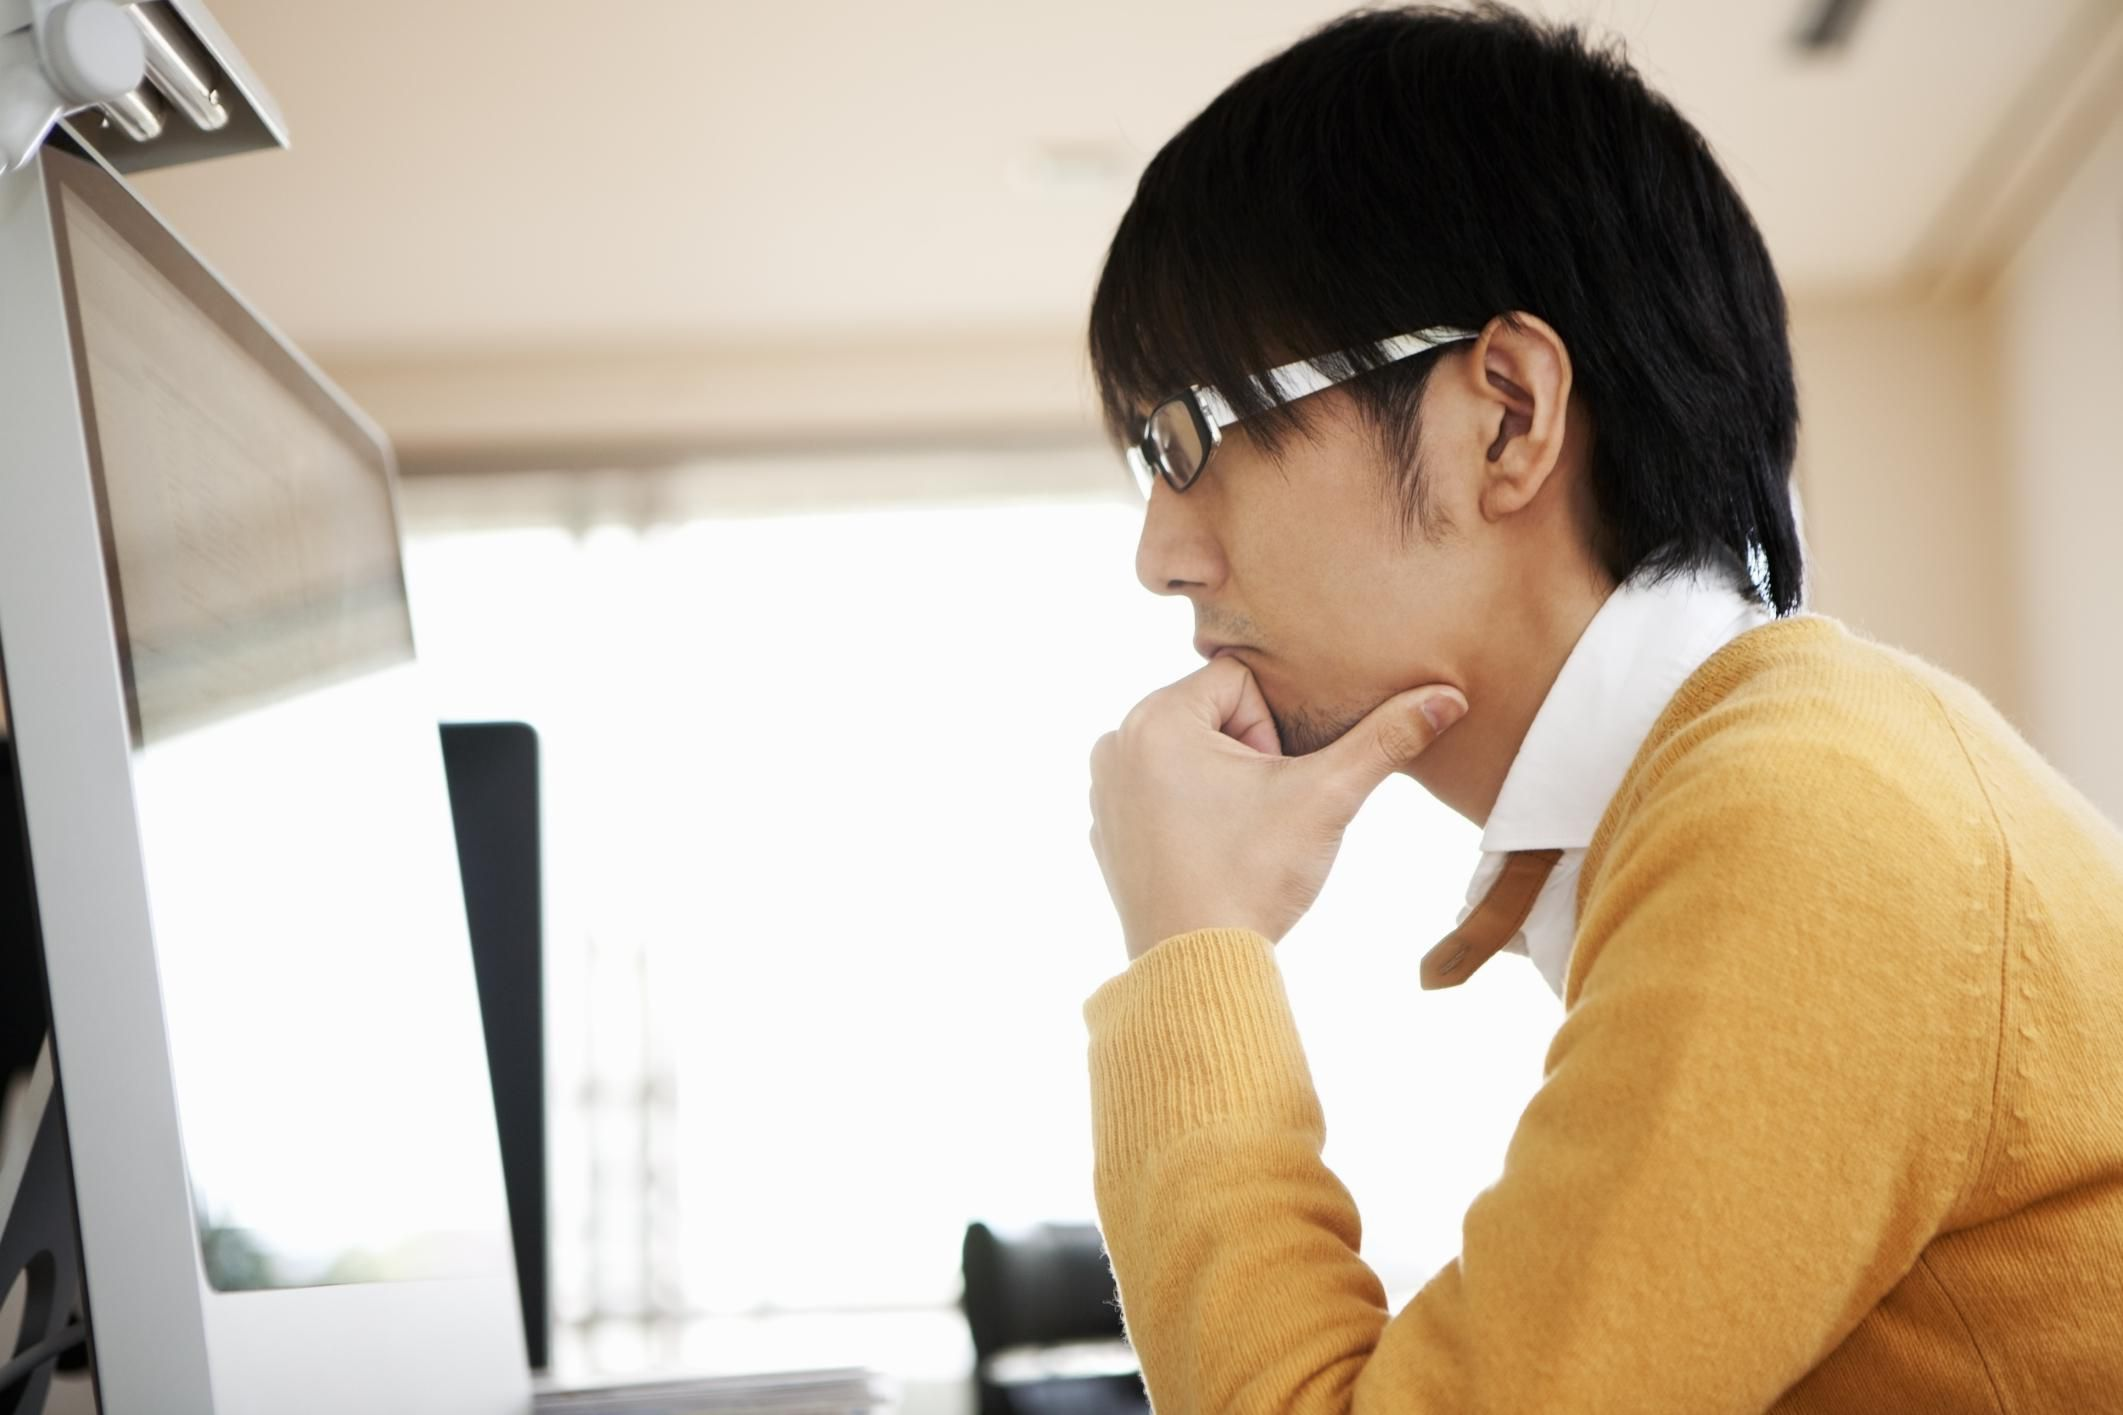 Paths to Becoming a Web Designer